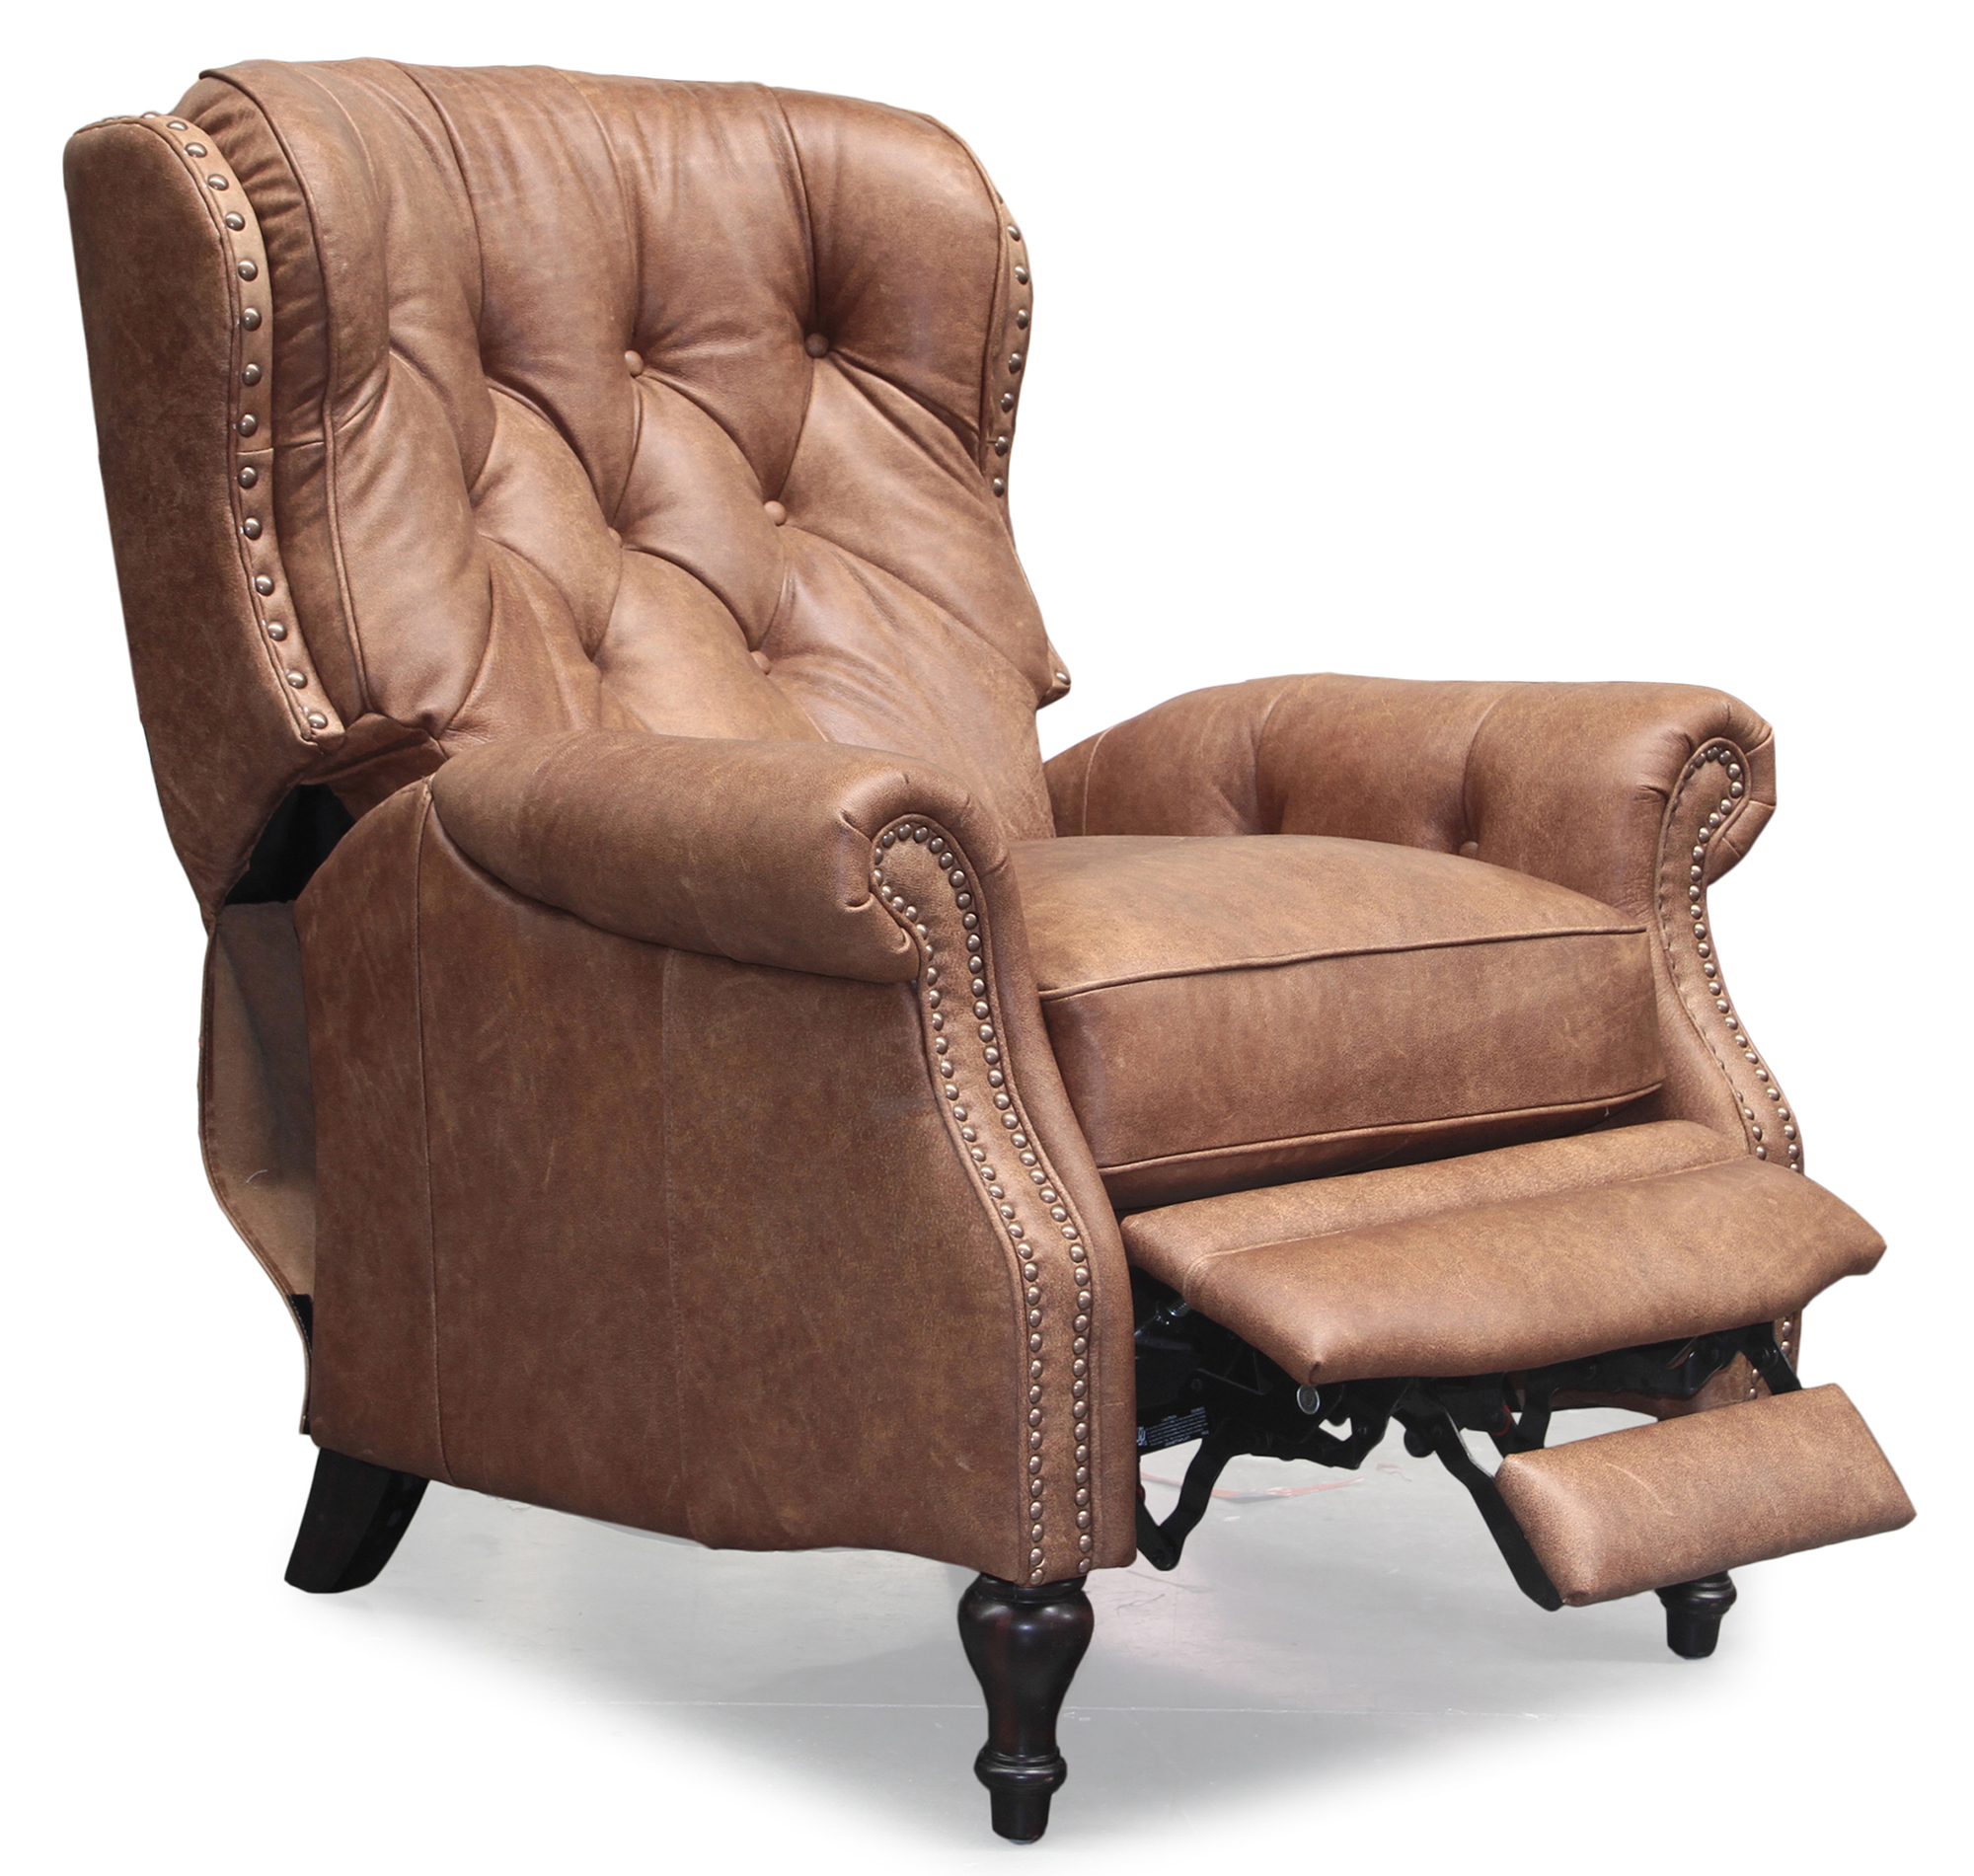 barcalounger kendall ii recliner chair leather recliner chair rh vitalityweb com